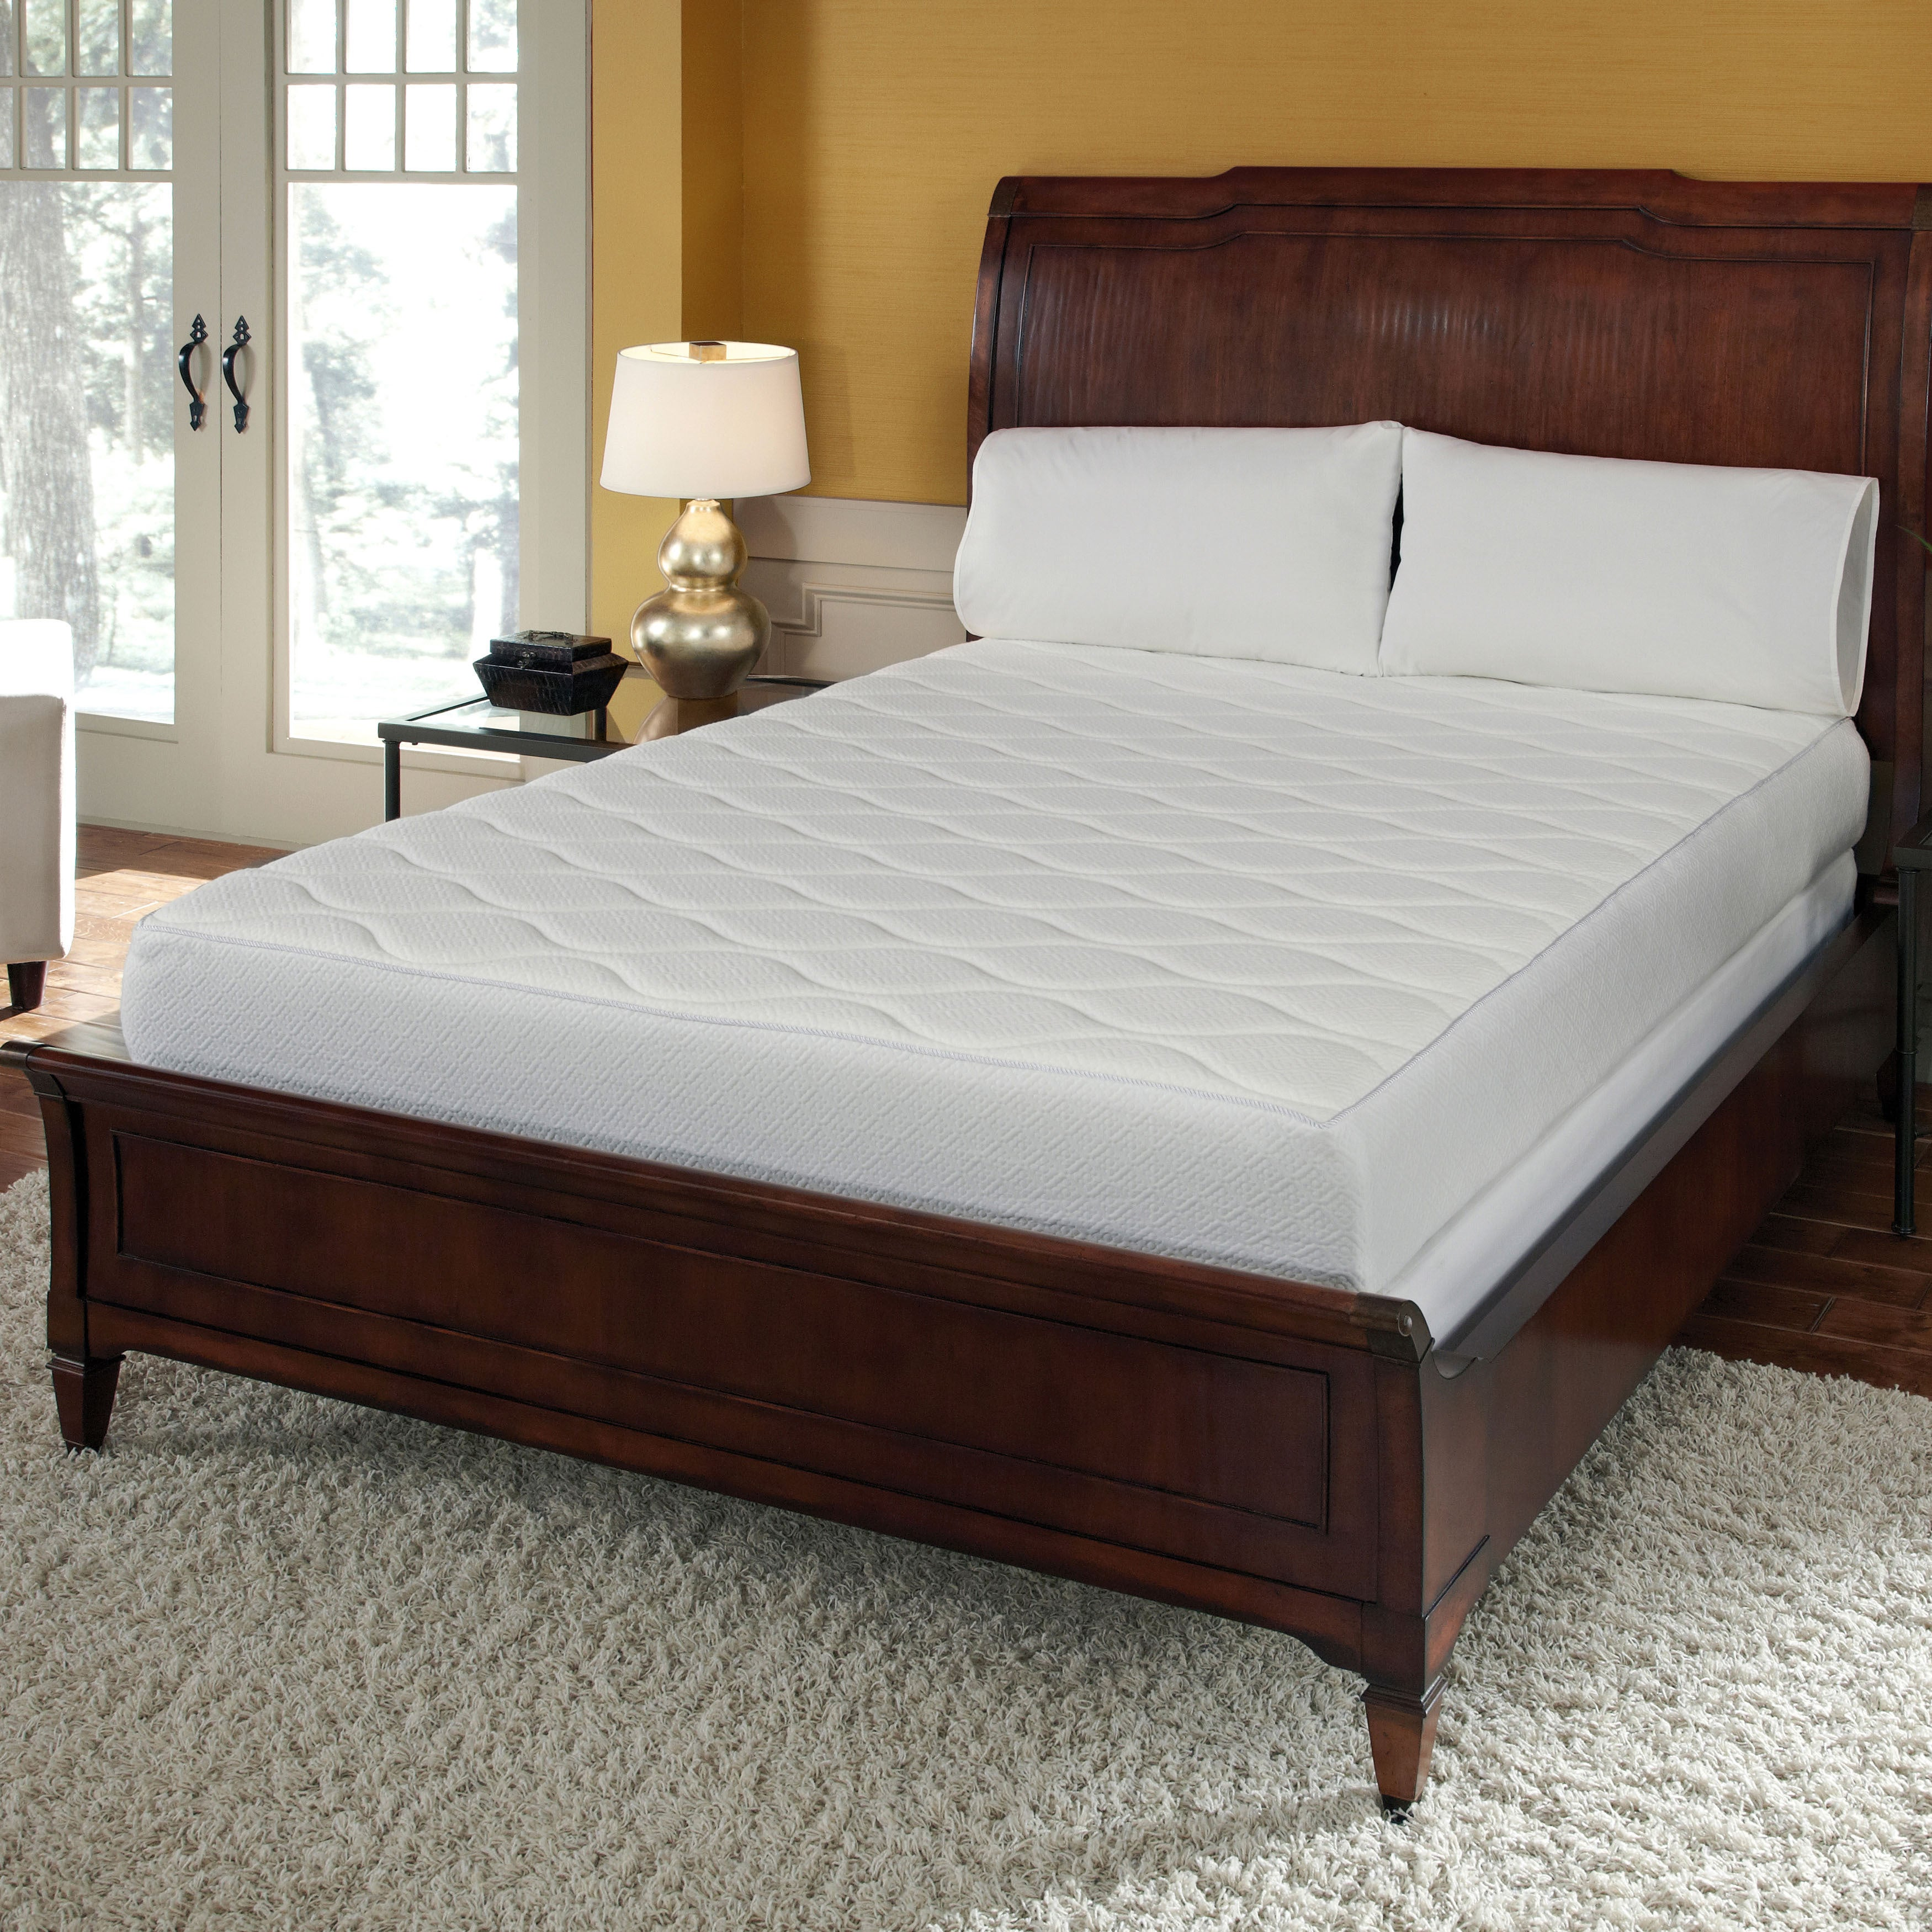 foam size memory ip com walmart queen multiple spa mattress sizes sensations tempurpedic